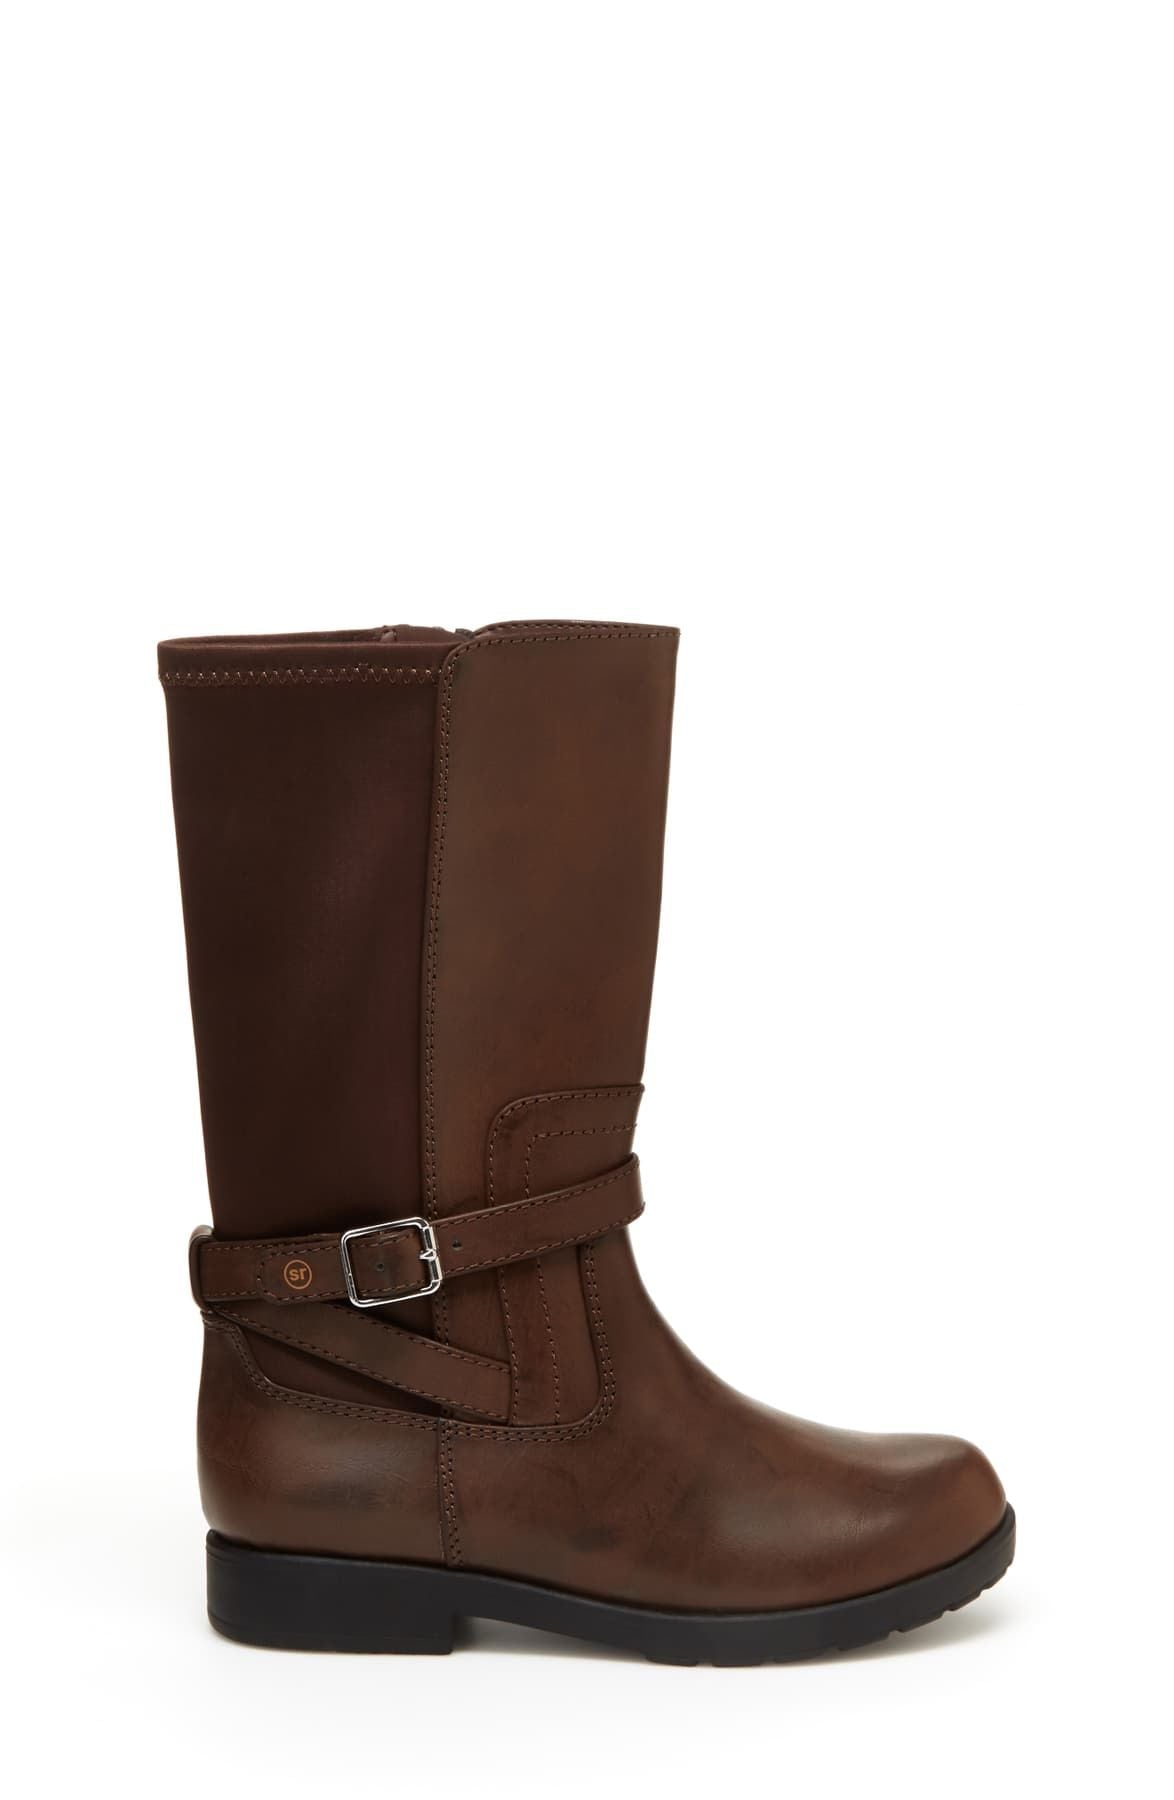 Stride Rite Ellarose Tallboot - Brown